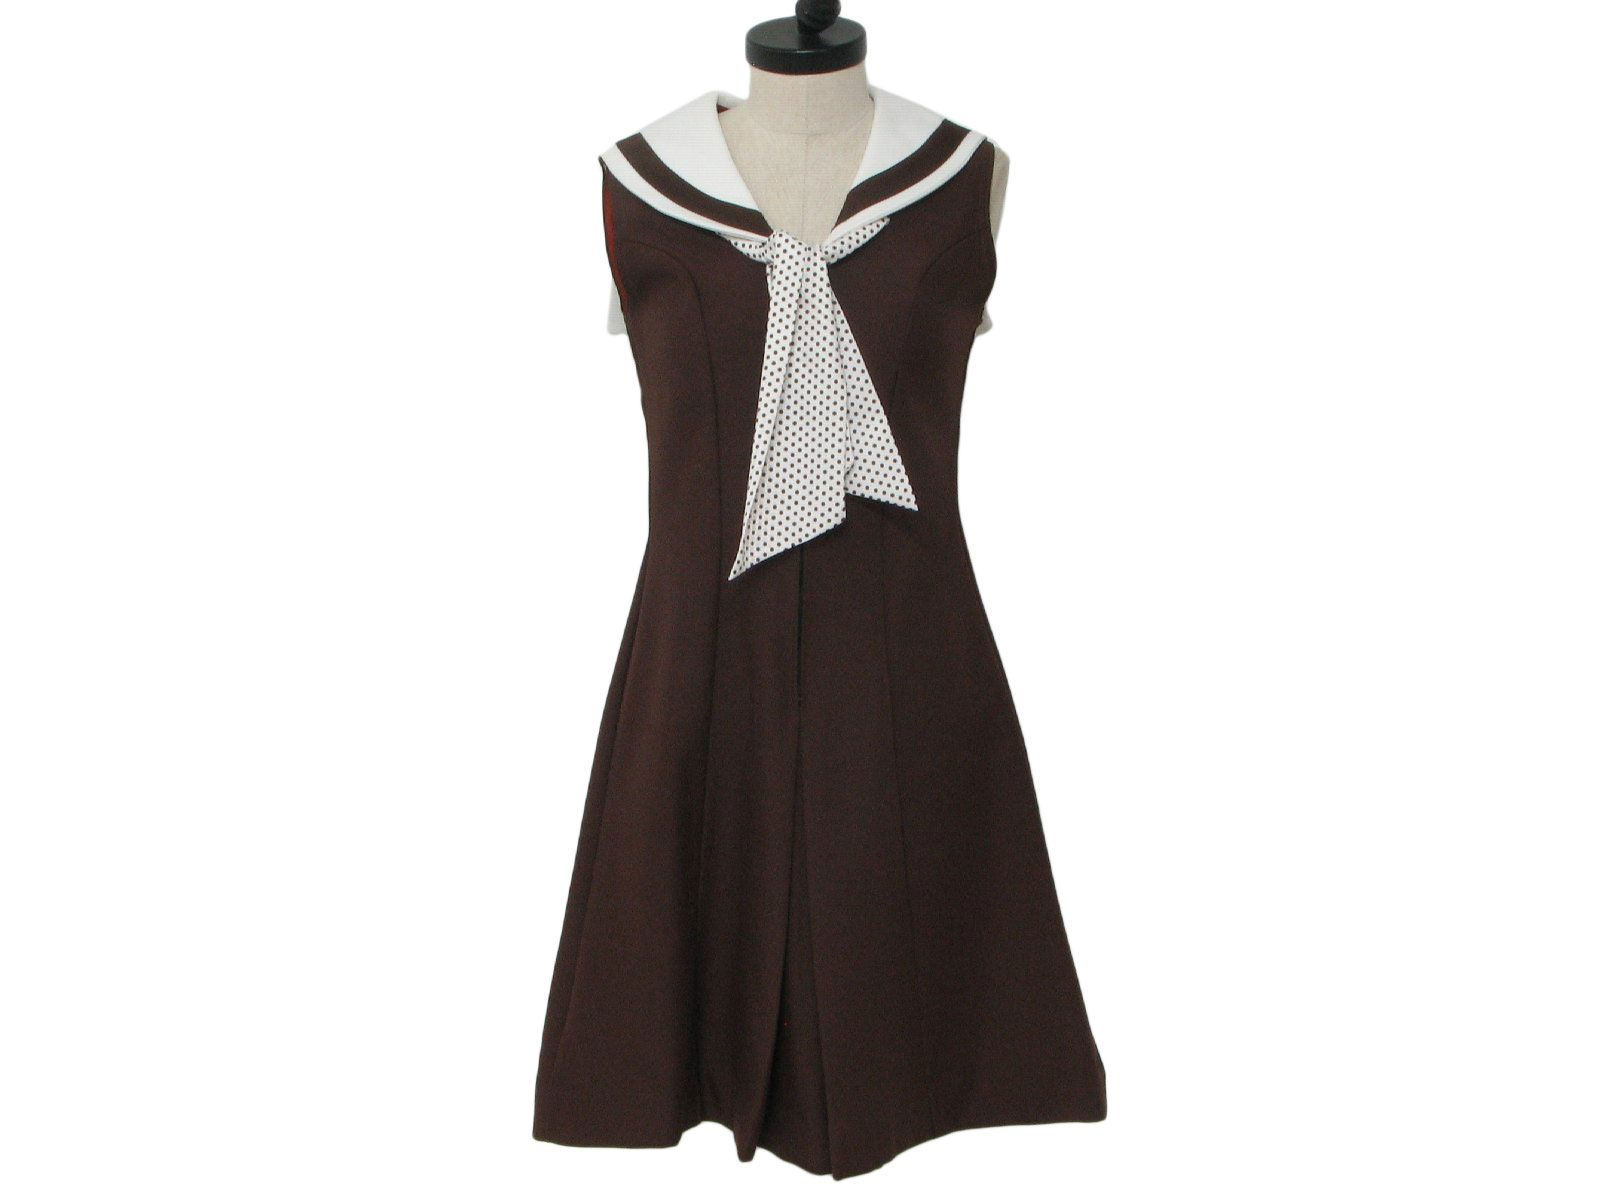 S by plaza south womens dark brown and white polyester twill